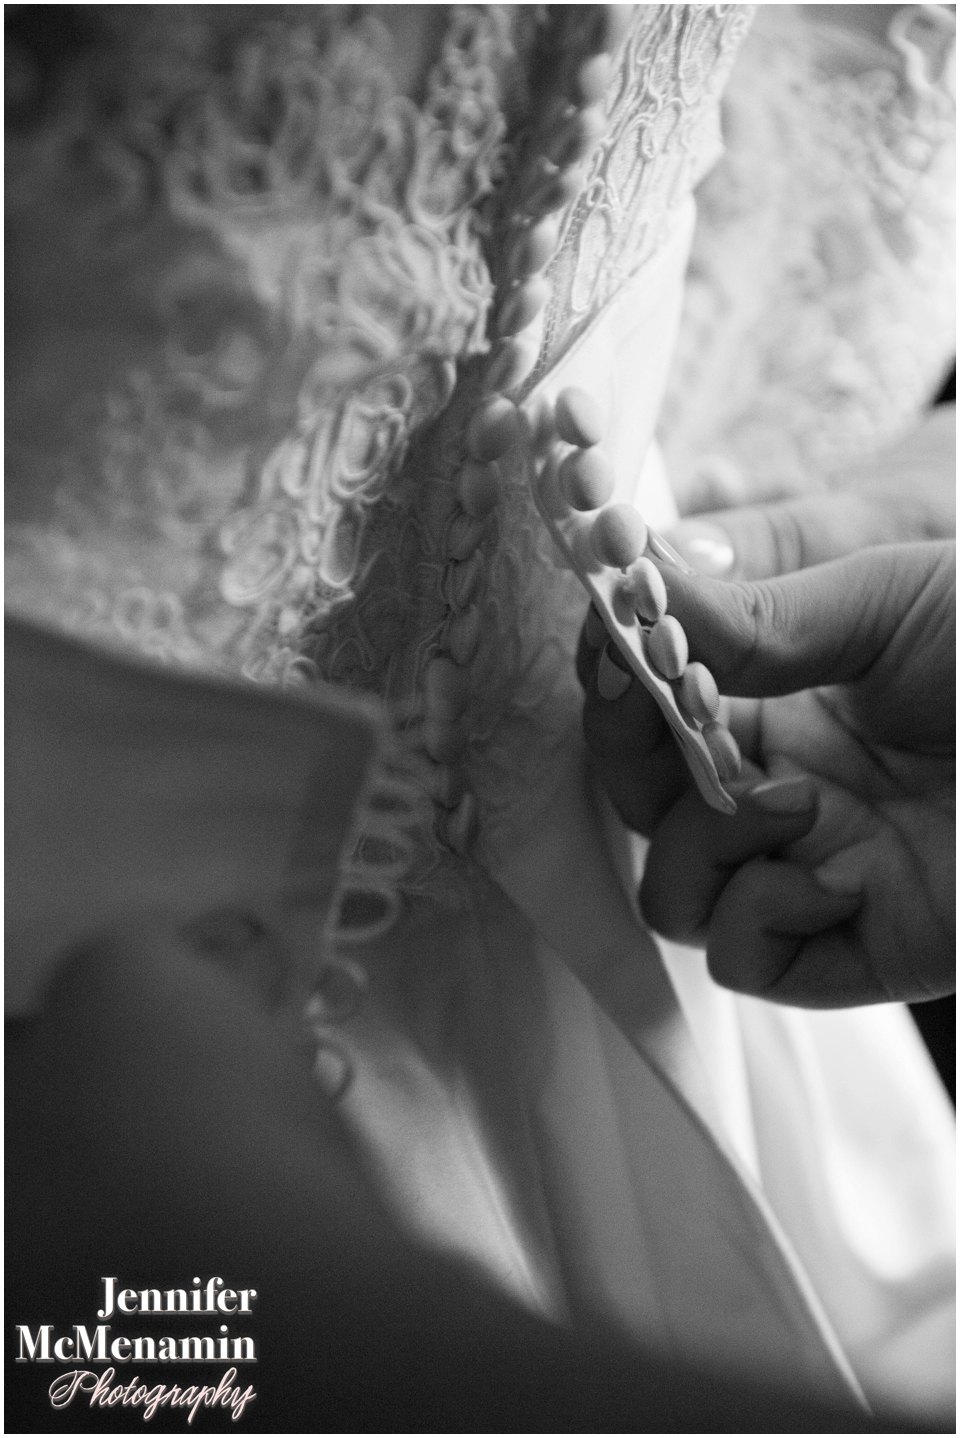 0025_RyanClemmens_00662-0169_JenniferMcMenaminPhotography_Immaculate-Conception-Church_The-Cloisters_Baltimore-wedding-photography_Baltimore-wedding-photographer